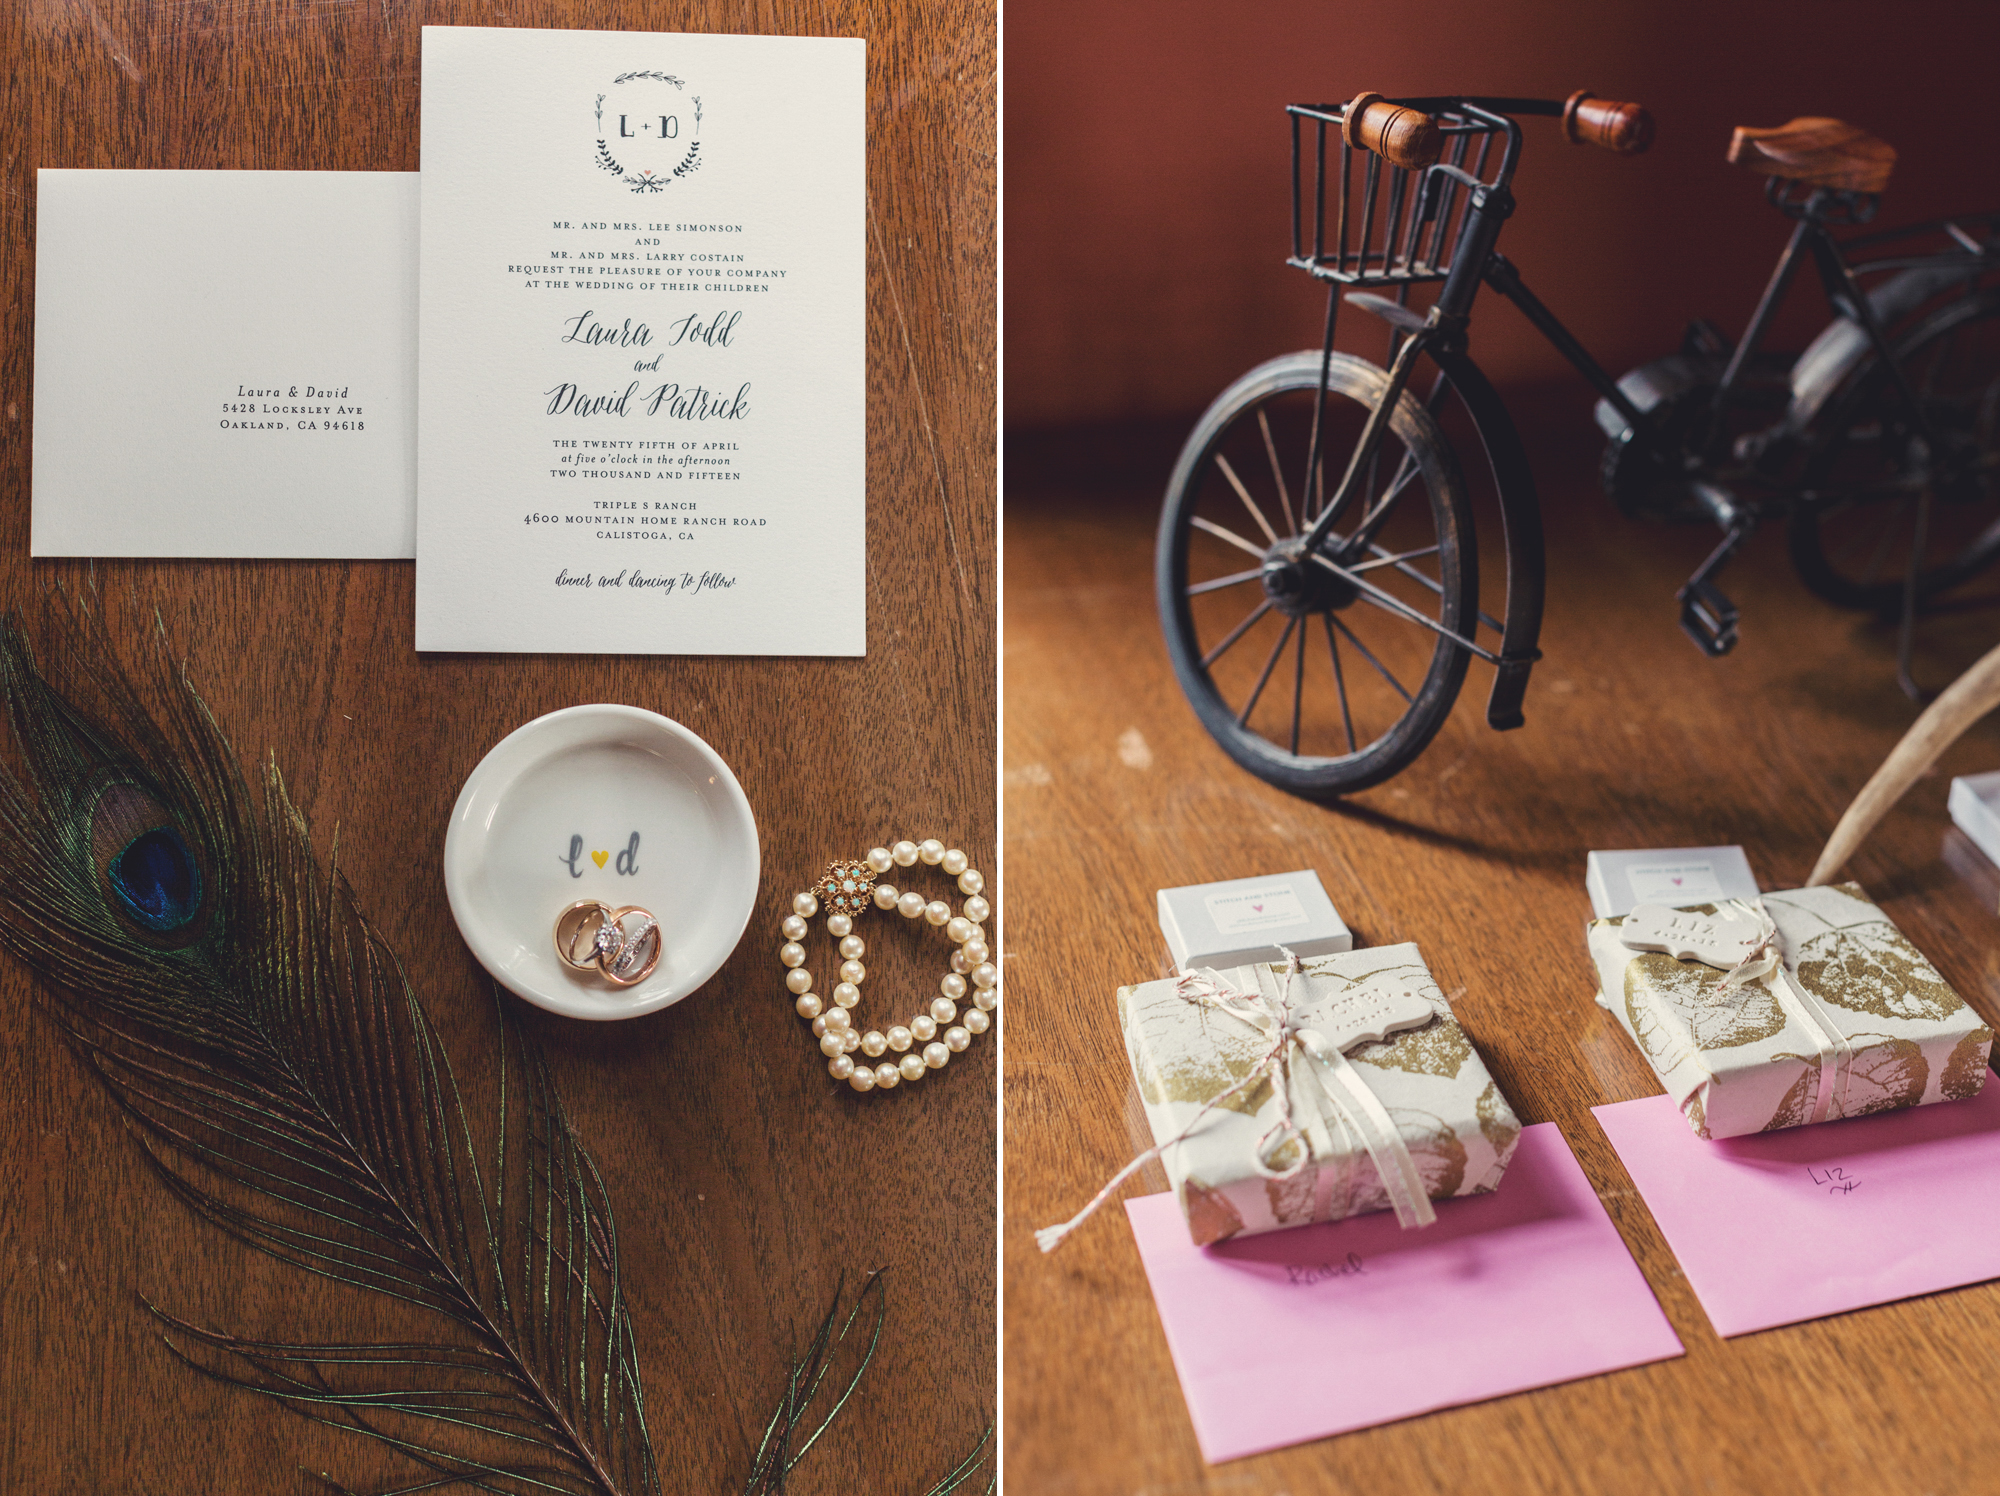 Triple S Ranch Wedding in Napa Valley @Anne-Claire Brun 0011